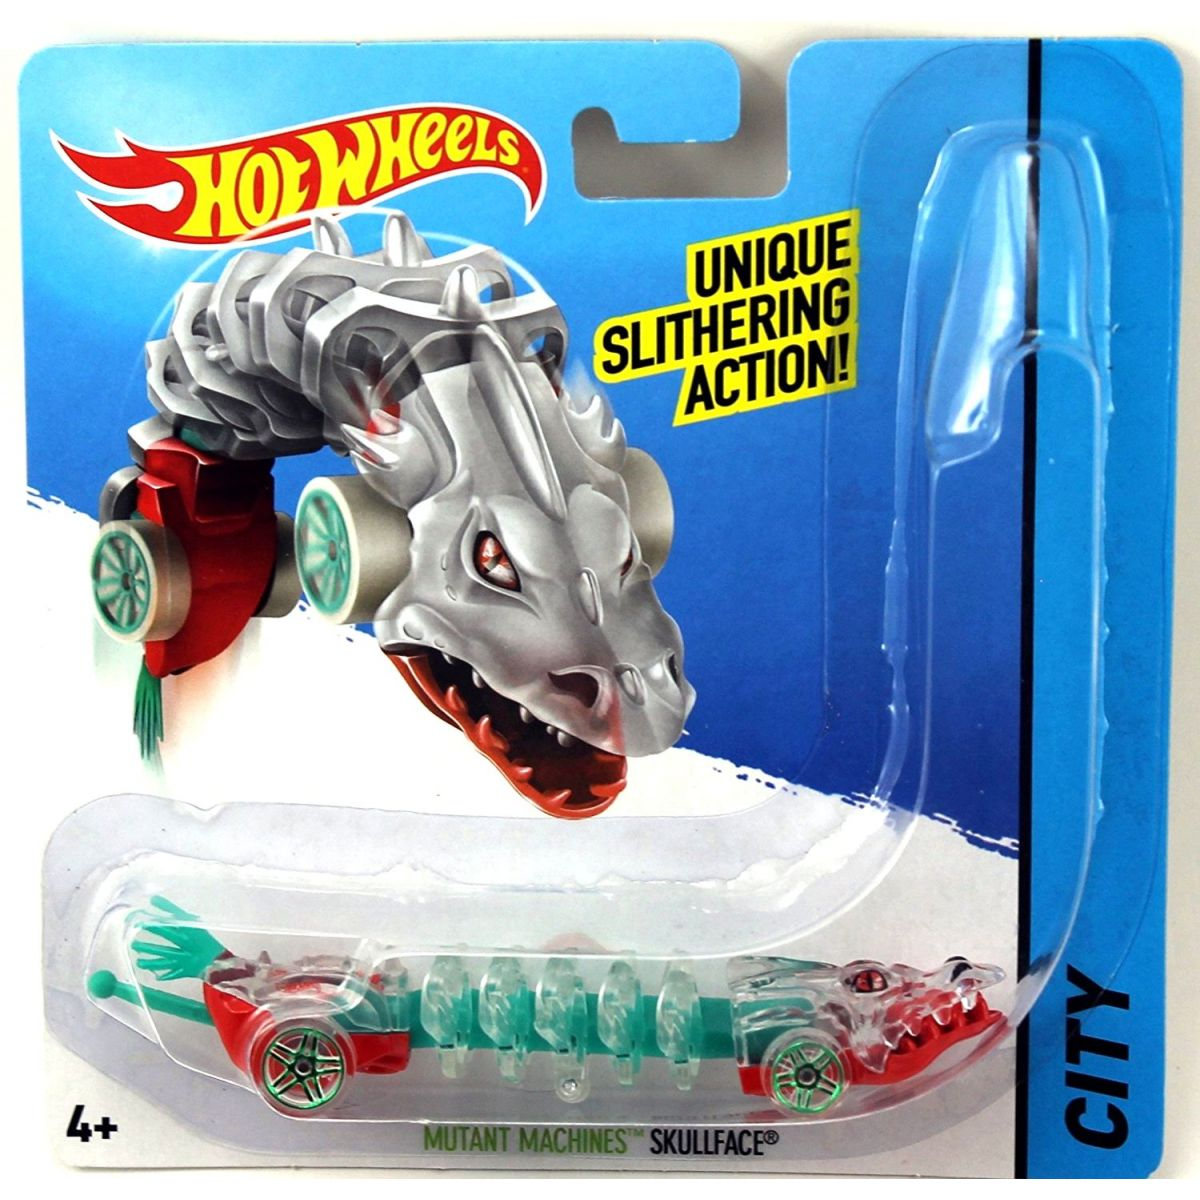 Hot Wheels Auto Mutant Skullface